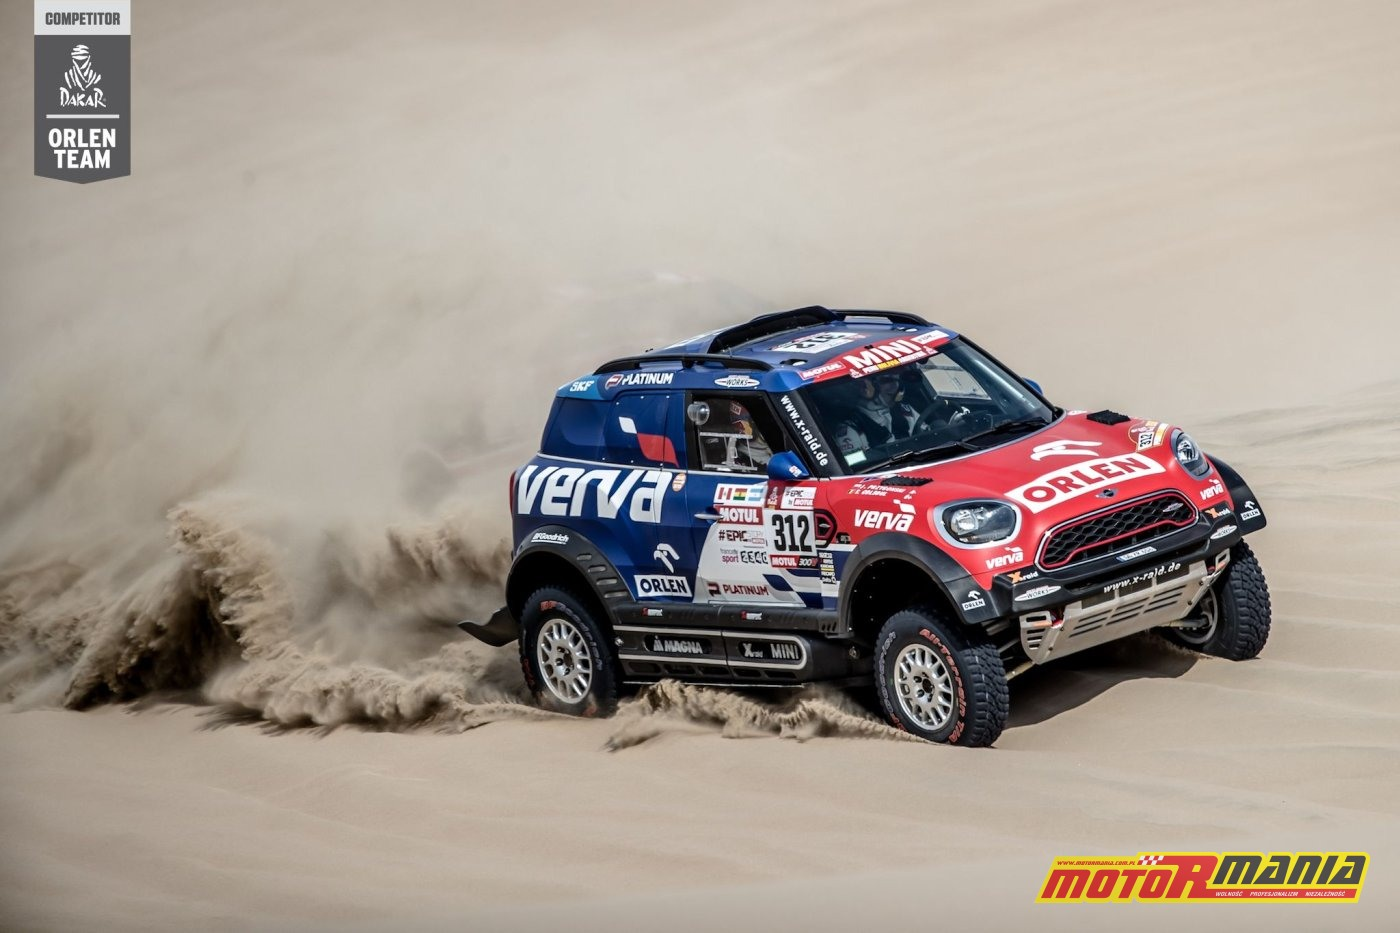 Dakar2018 D01 ORLEN_Team Przygonski_5 MCH_Photo_OT